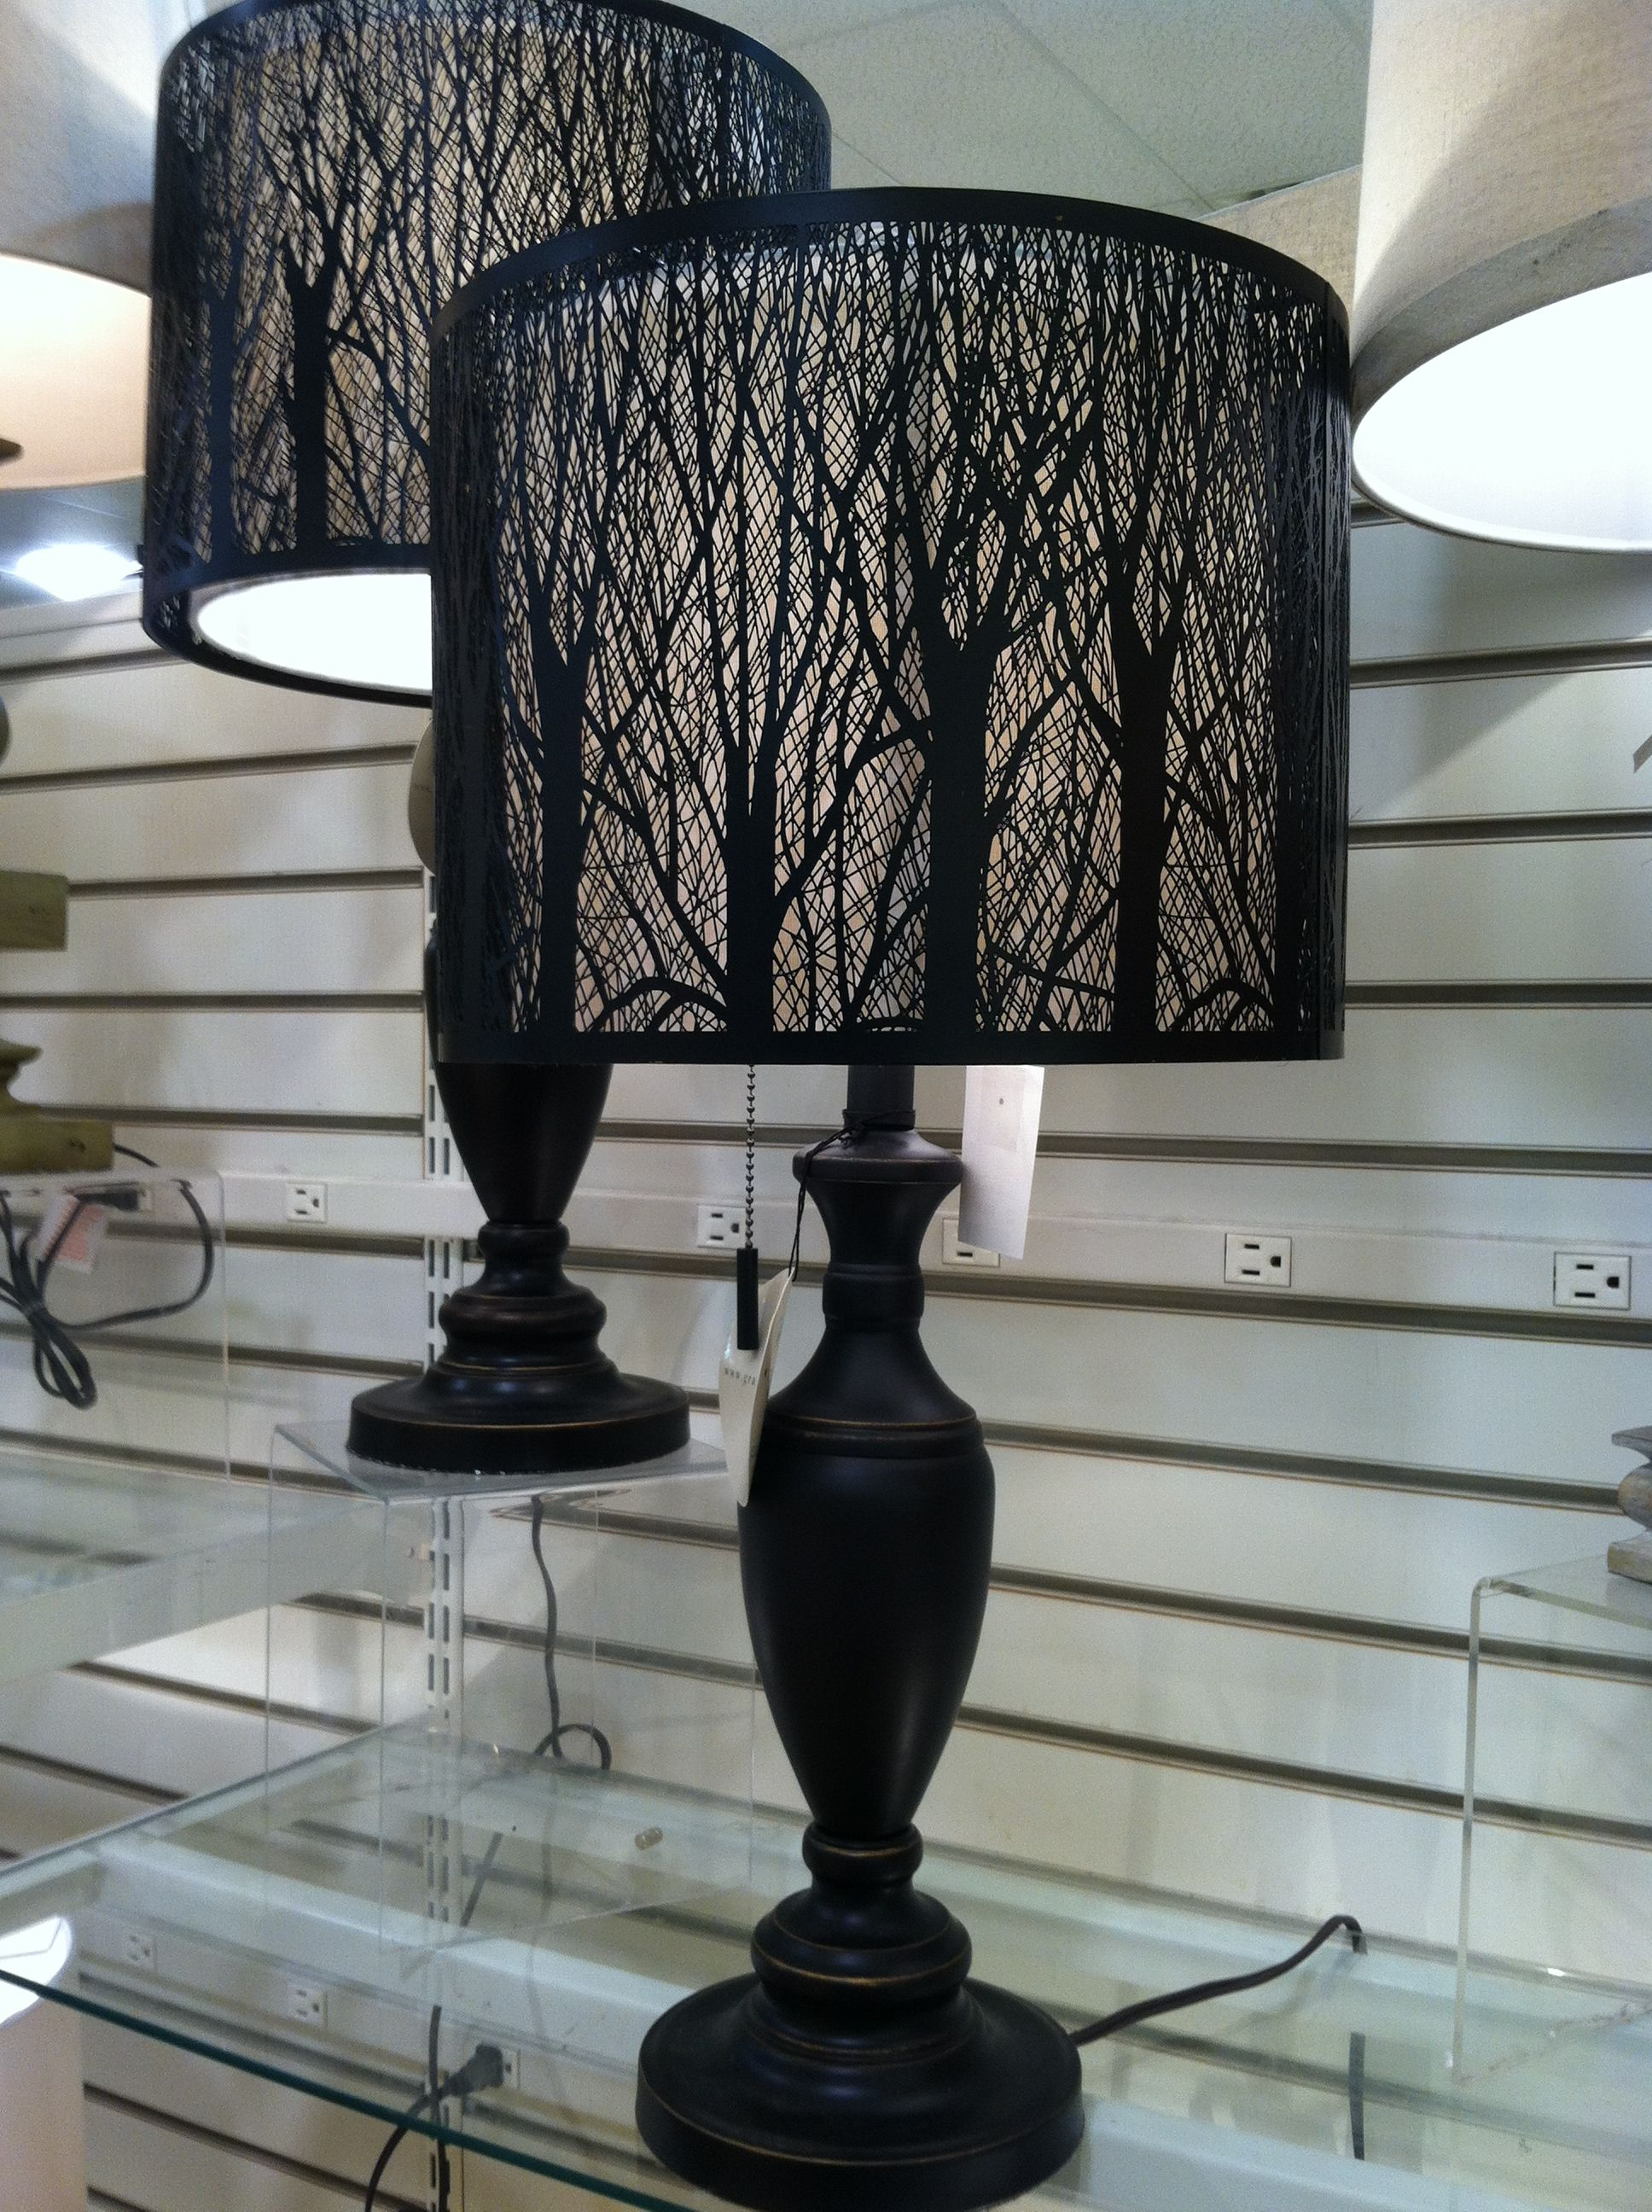 Table lamp with tree branch cut outs on shade very cool looking at homegoods